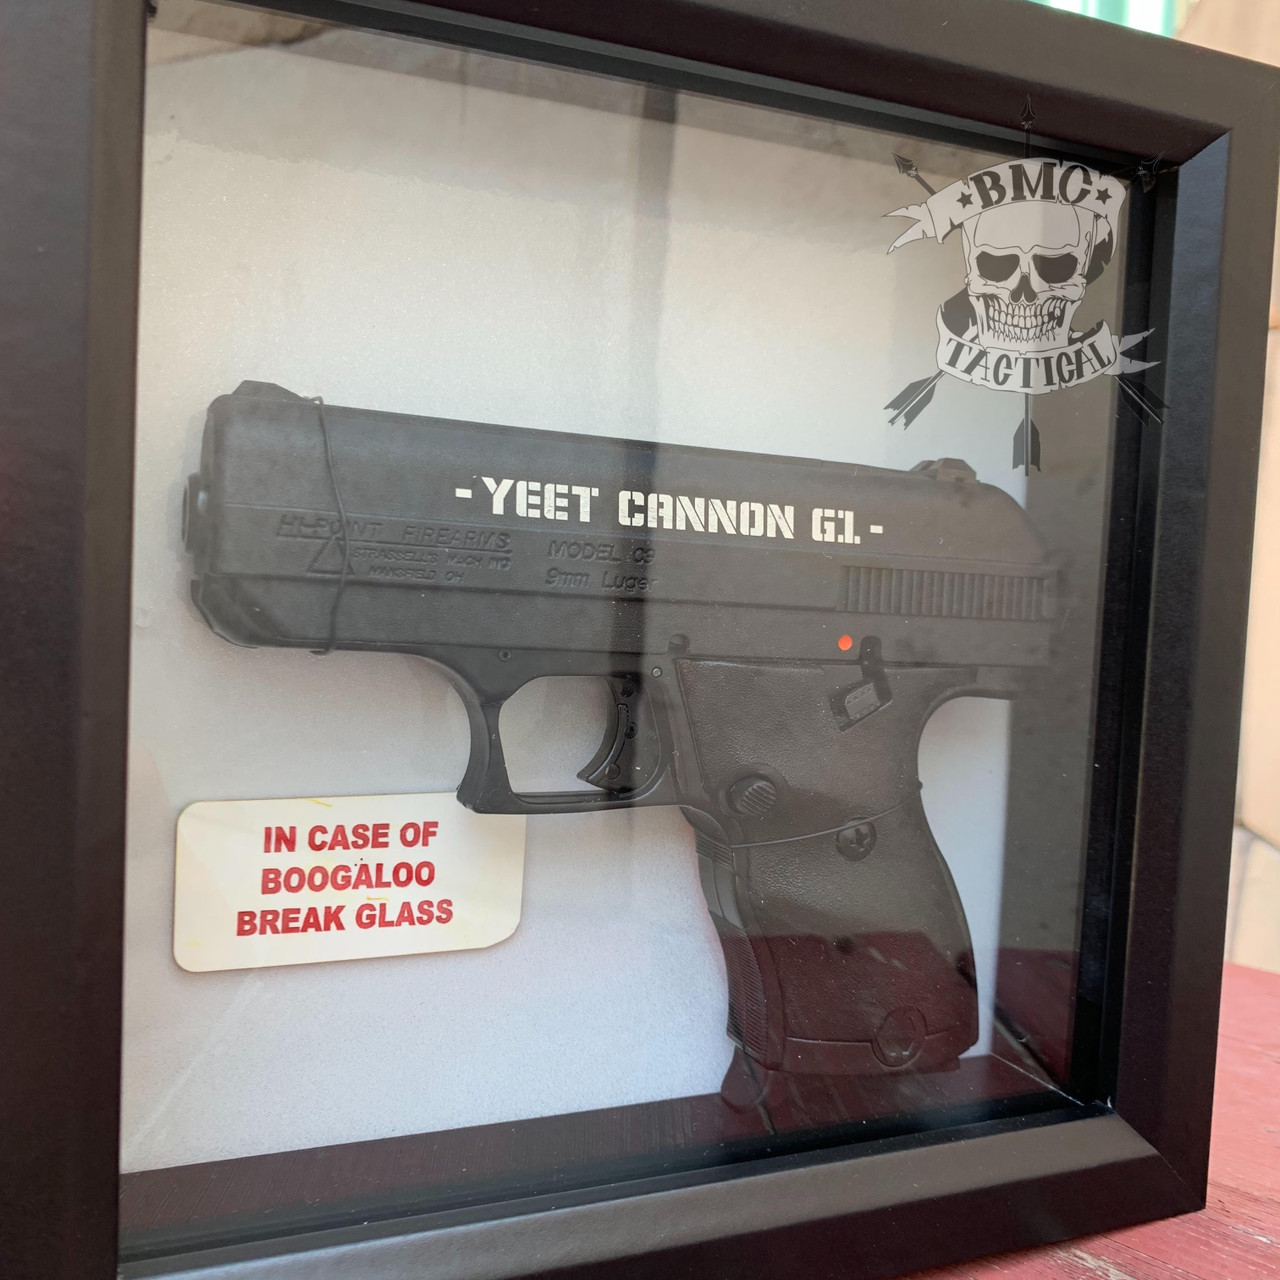 Hi Point Yeet Cannon With Display Case Bmc Tactical One name stood out in particular, yeet cannon. hi point yeet cannon with display case